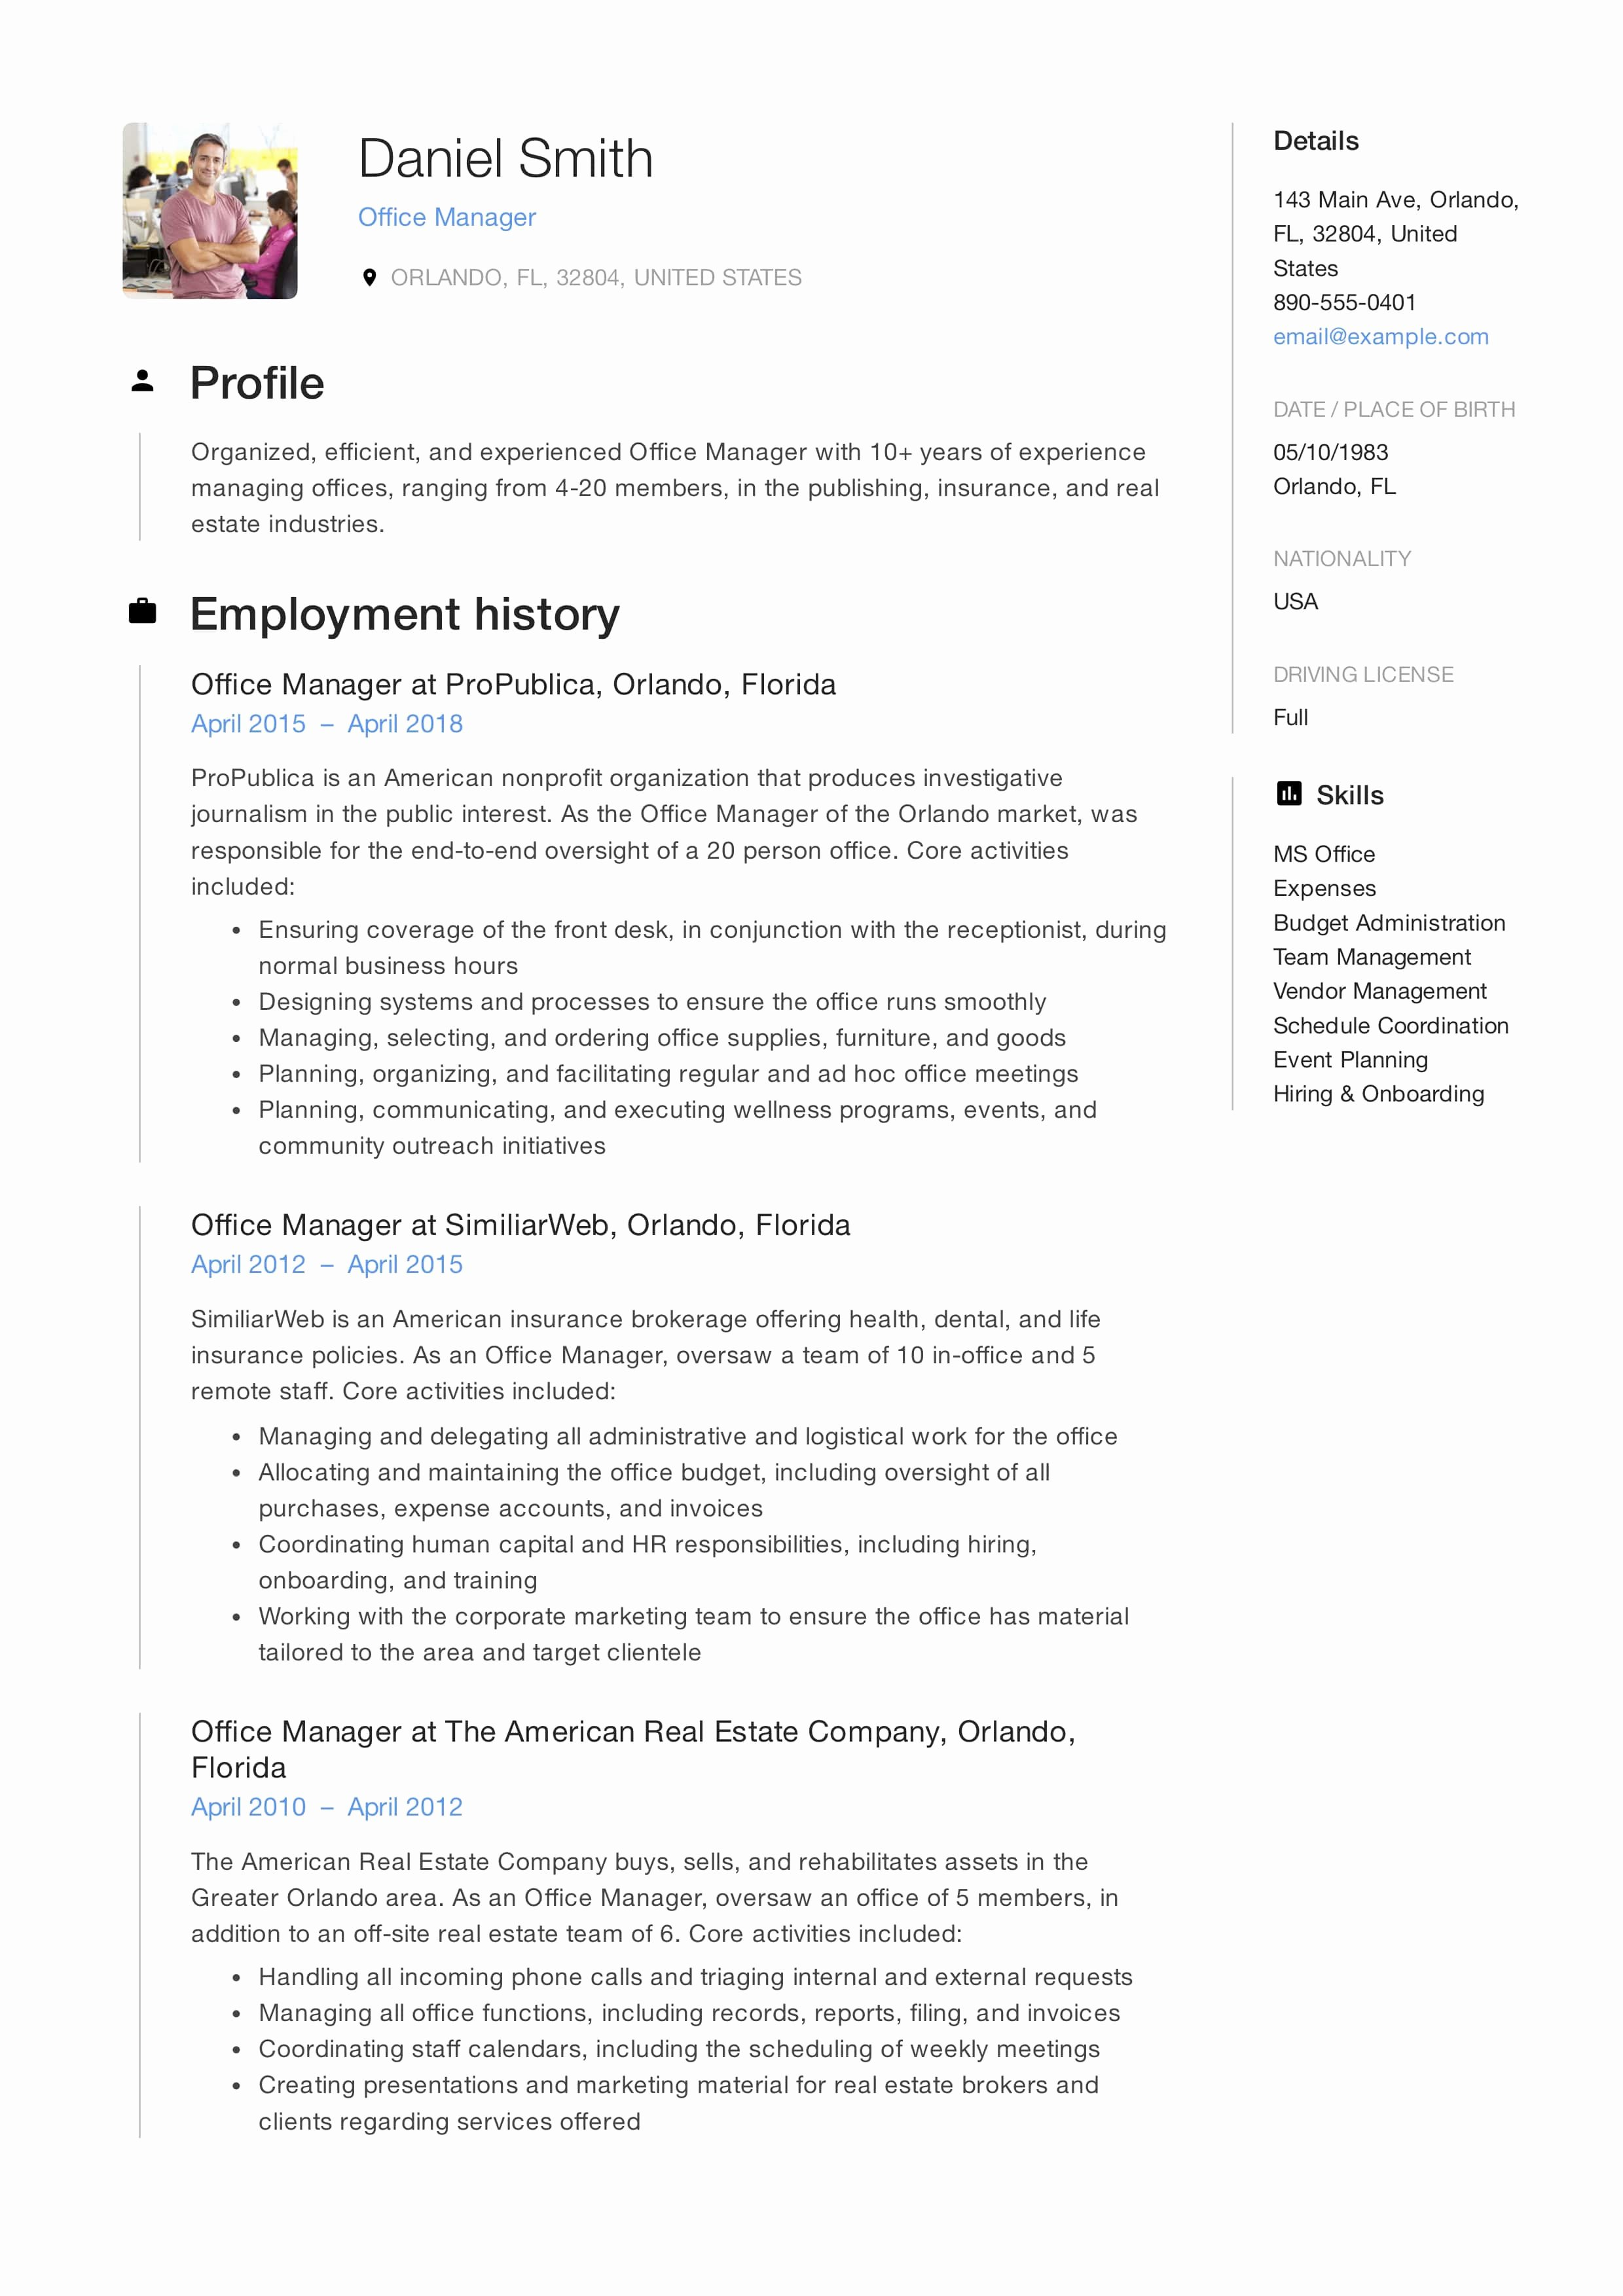 Office Manager Resume Template Inspirational Guide Fice Manager Resume [ 12 Samples ] Pdf